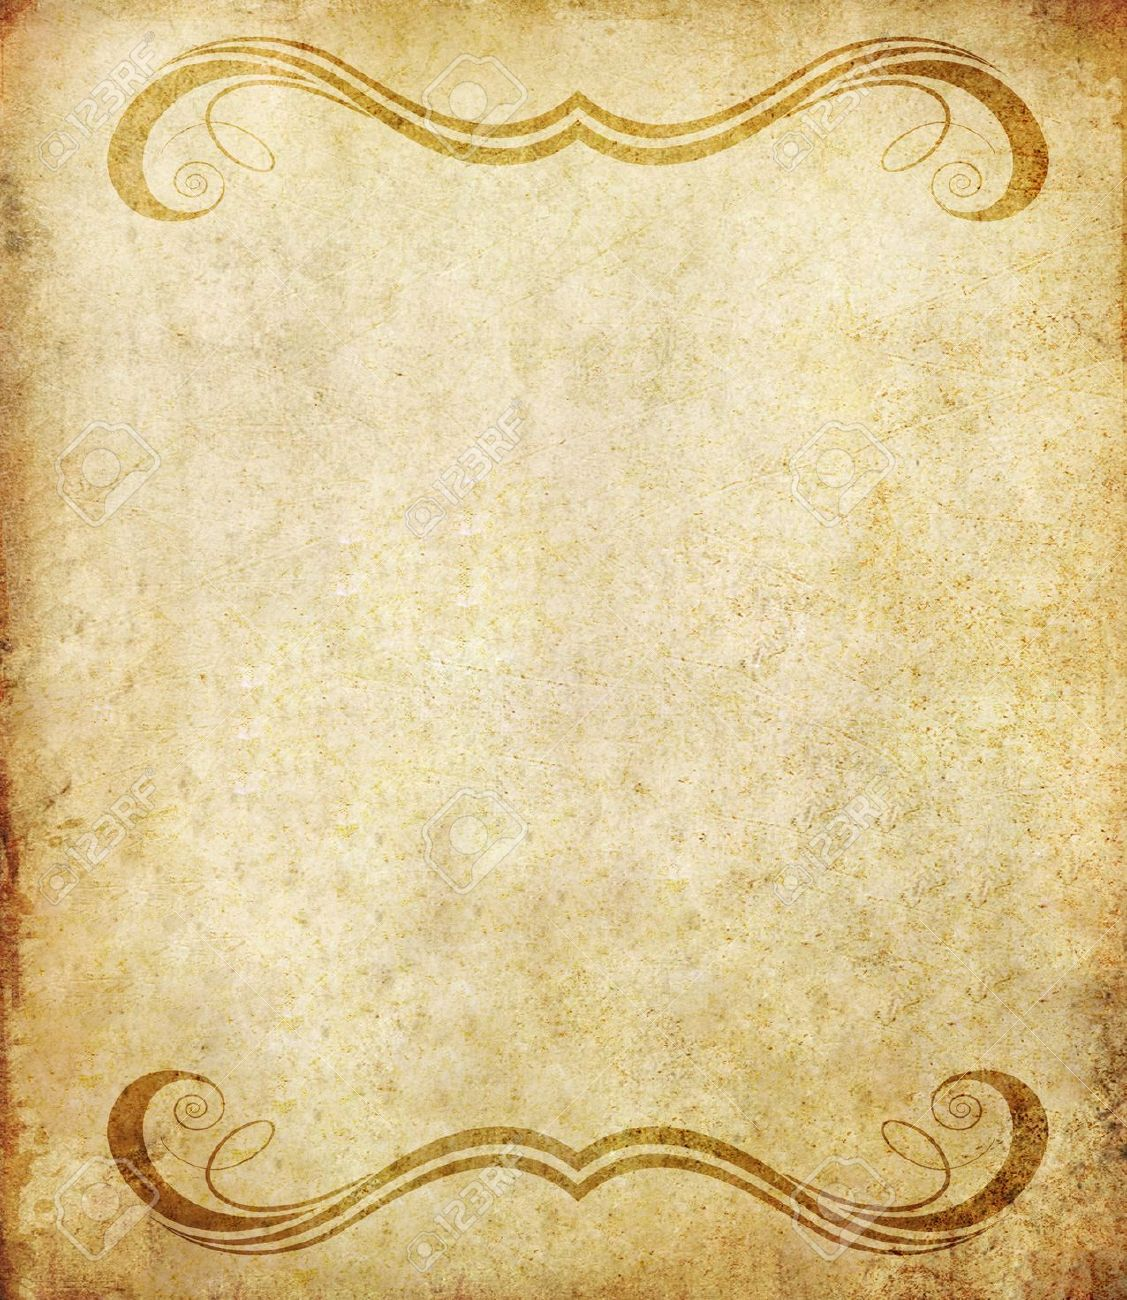 Old Grunge Paper Background With Vintage Style Stock Photo